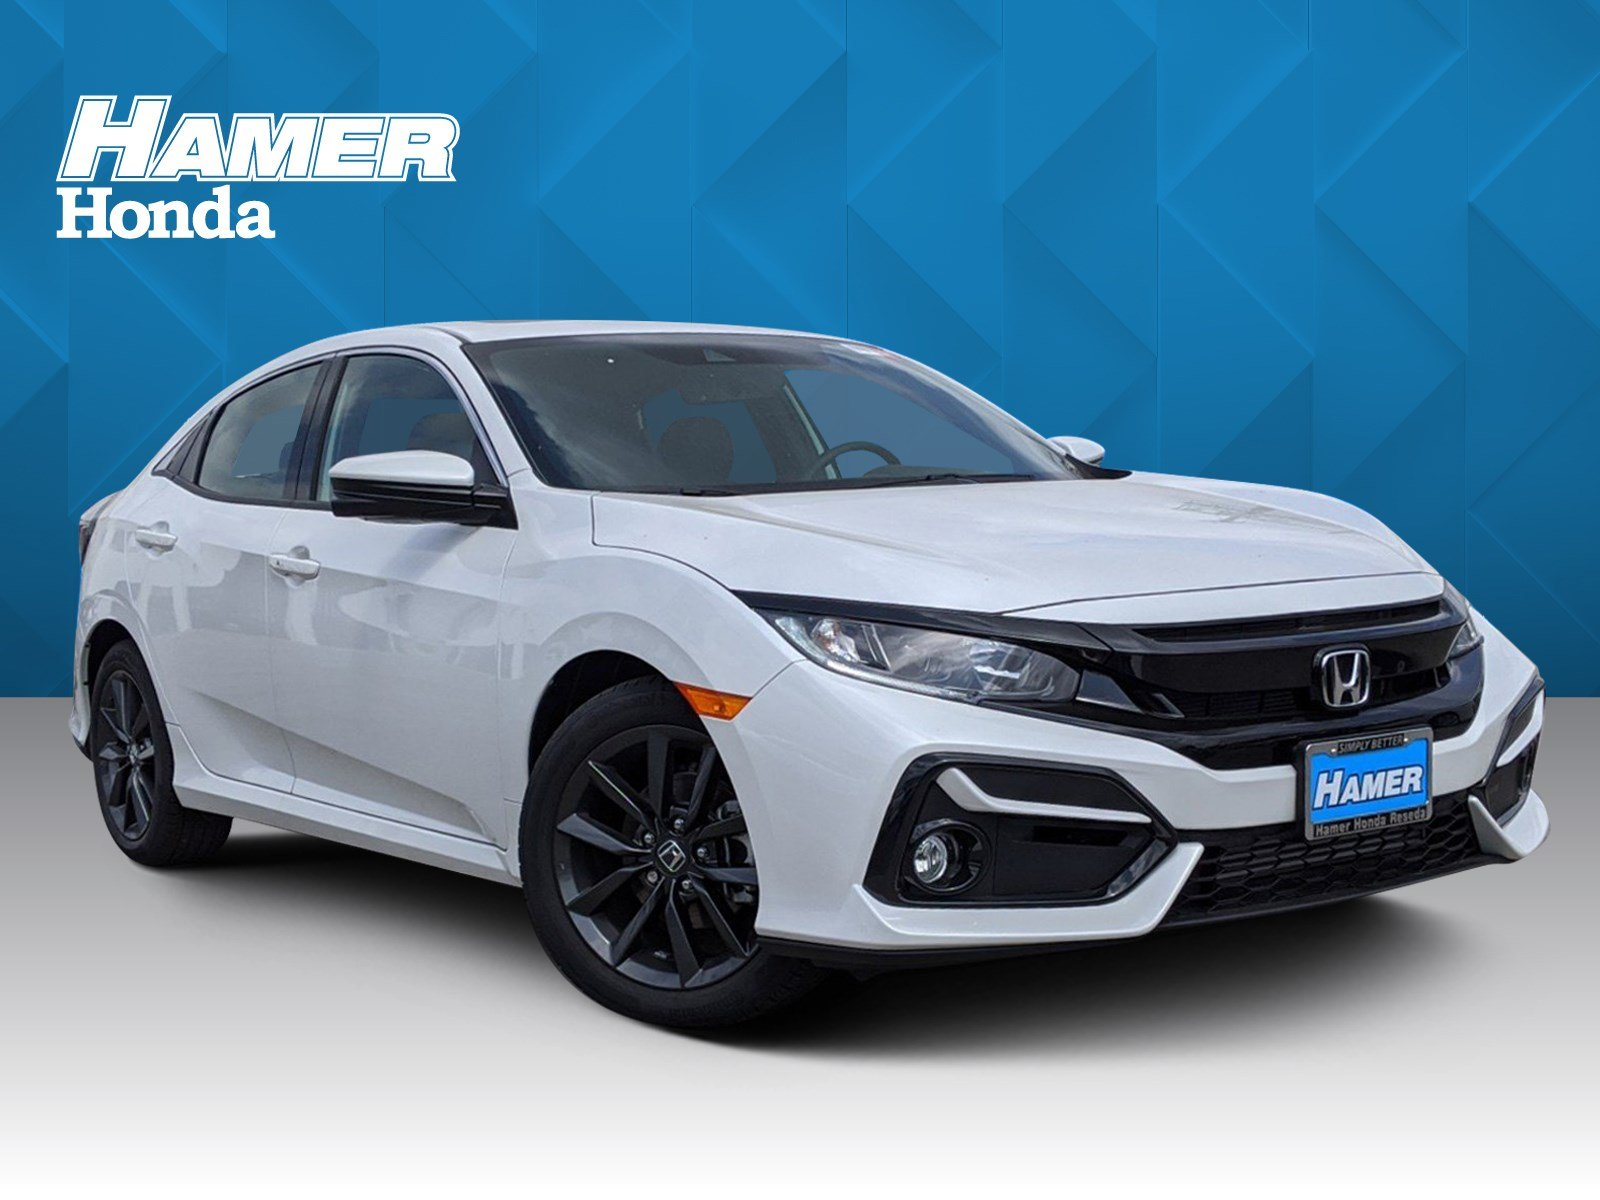 New 2020 Honda Civic Hatchback EX-L